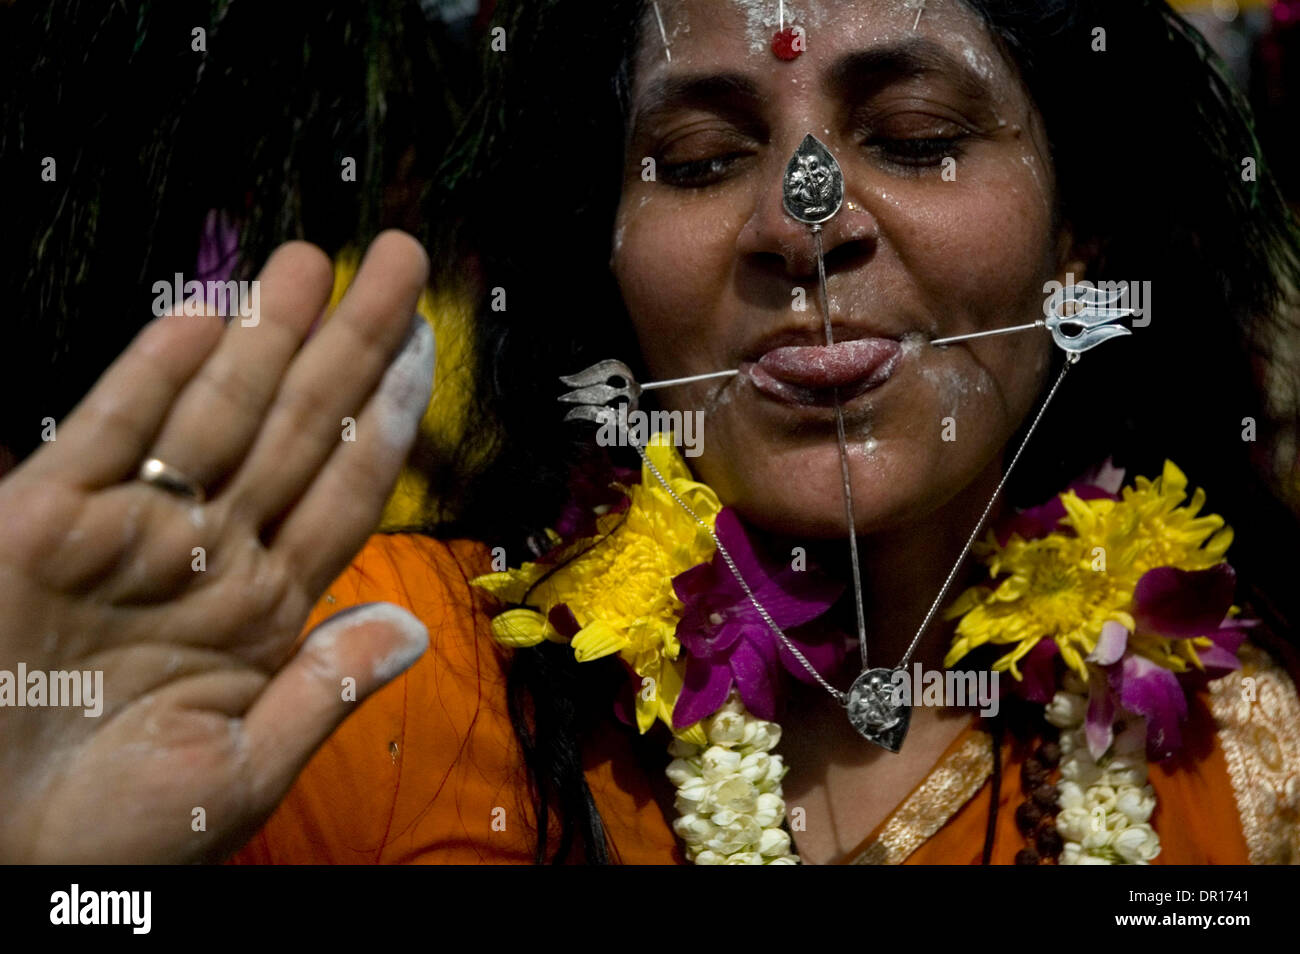 Feb 19, 2009 - Kuala Lumpur, Malaysia - A woman in tranced have a chained miniature metal lance pierced through her tounge during Thaipusam festival in Kuala Lumpur. Thaipusam is a Hindu festival celebrated mostly by the Tamil community on the full moon in the Tamil month of Thai. Pusam refers to a star that is at its highest point during the festival. The festival commemorates bot - Stock Image